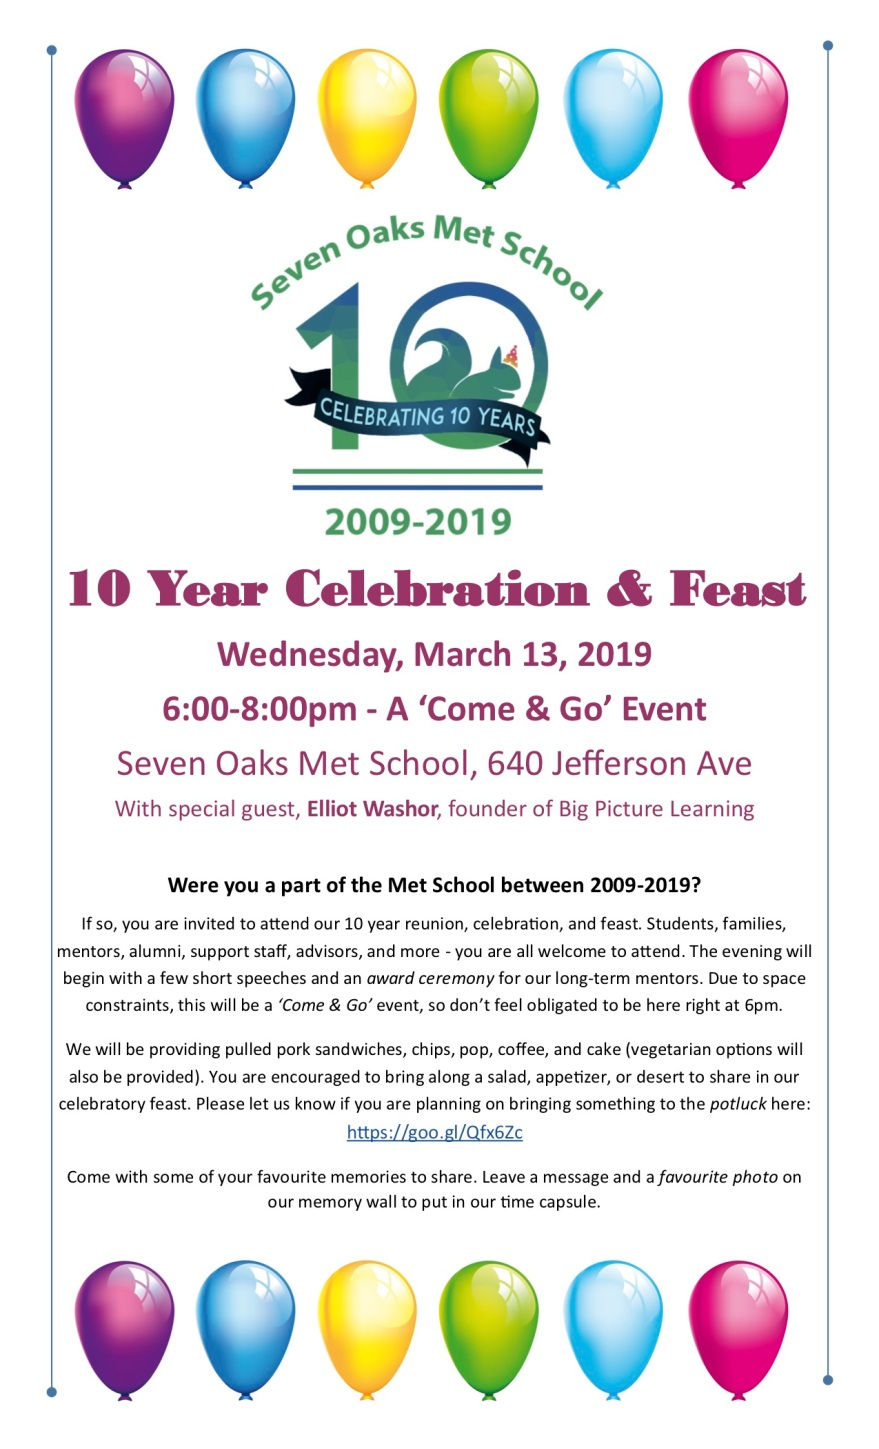 Met School 10 Year Invite